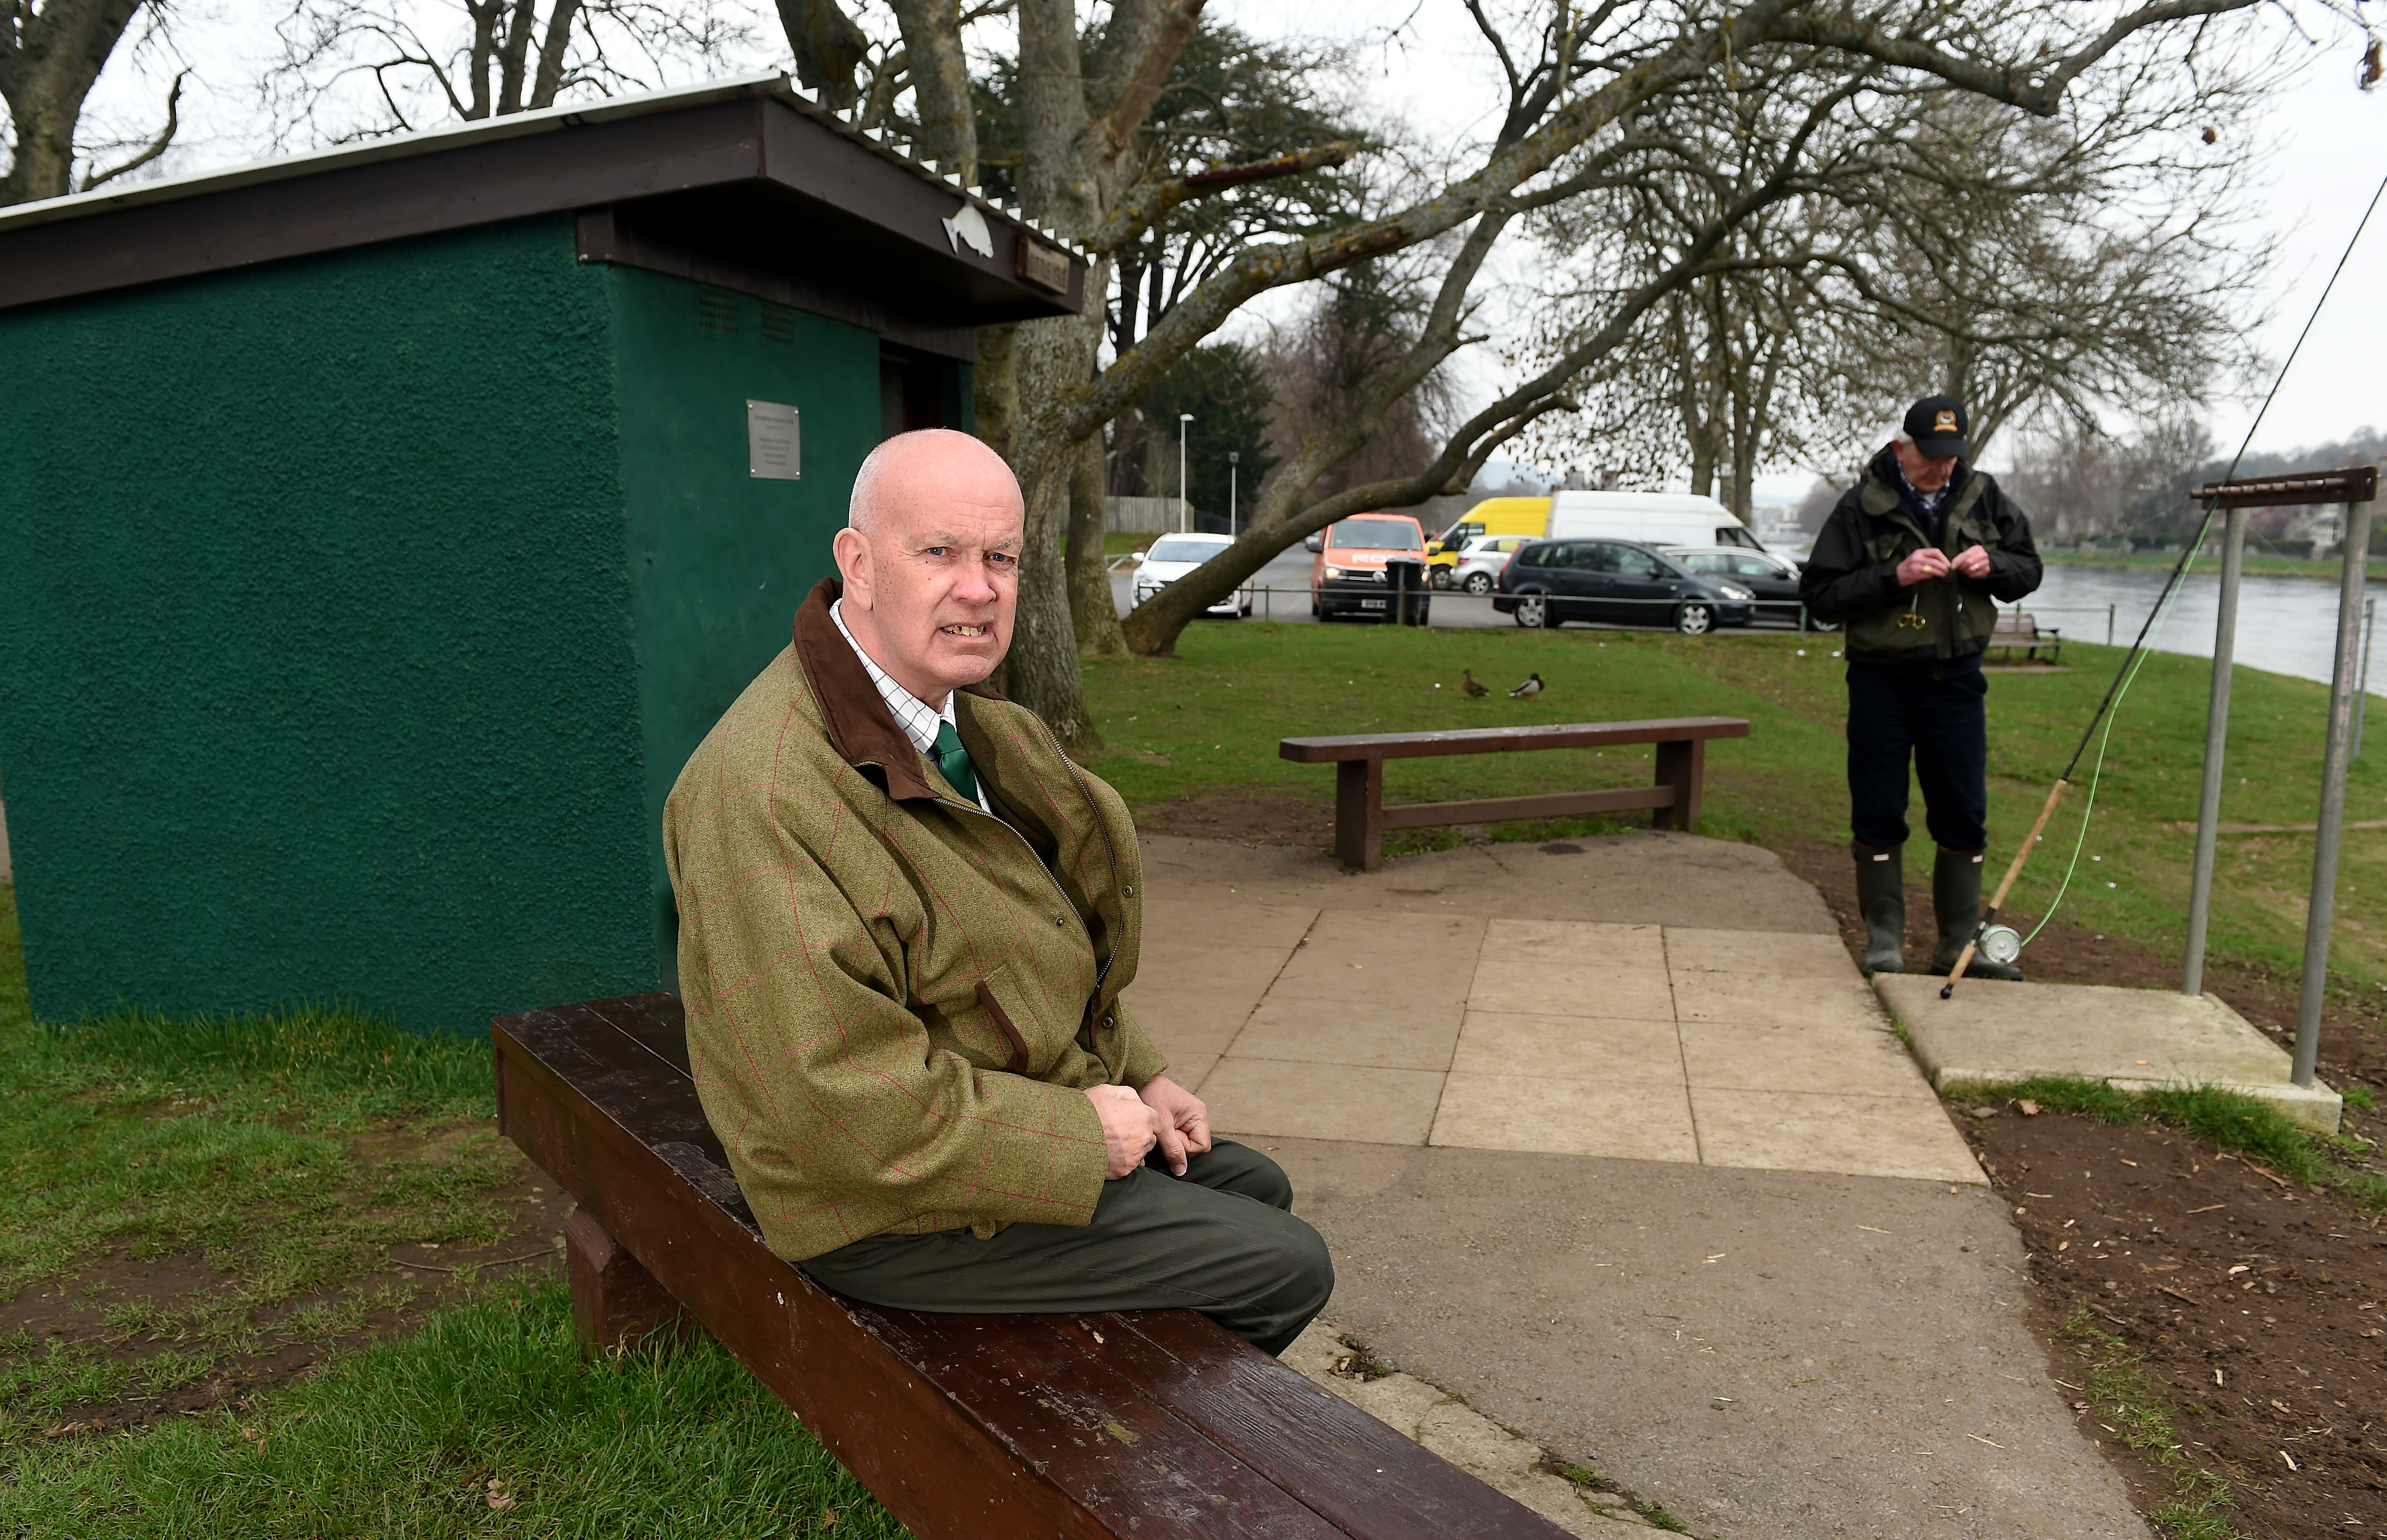 Graham Mackenzie, President of Inverness Angling Club with their current fishing bothy on the banks of the Ness which will have to be demolished for the new public art works.